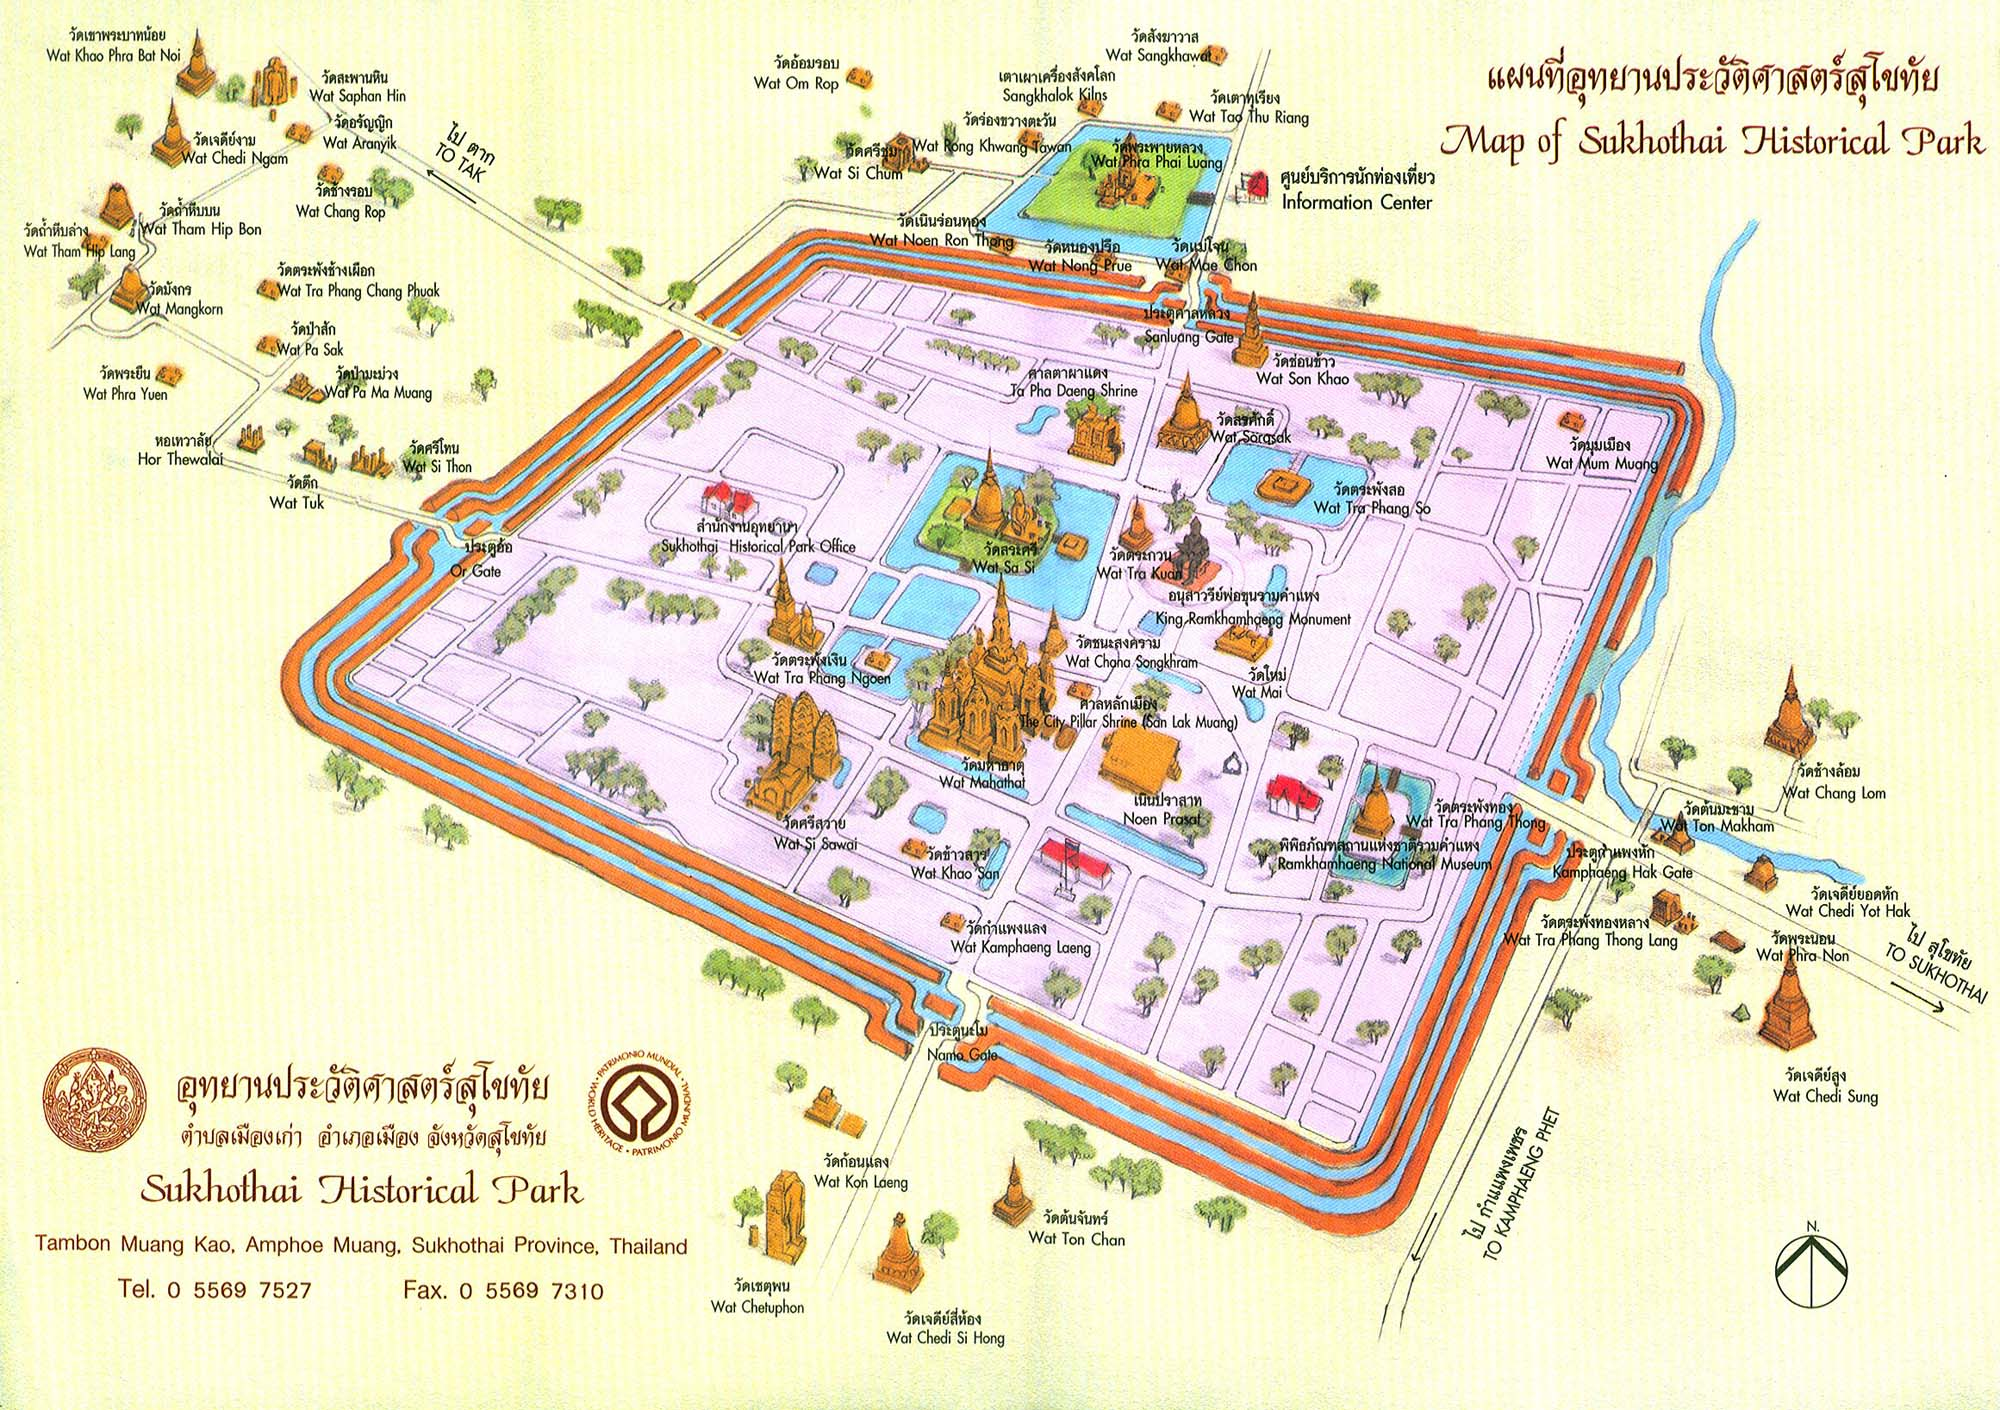 Sukhothai Old City map, source: teakdoor.com